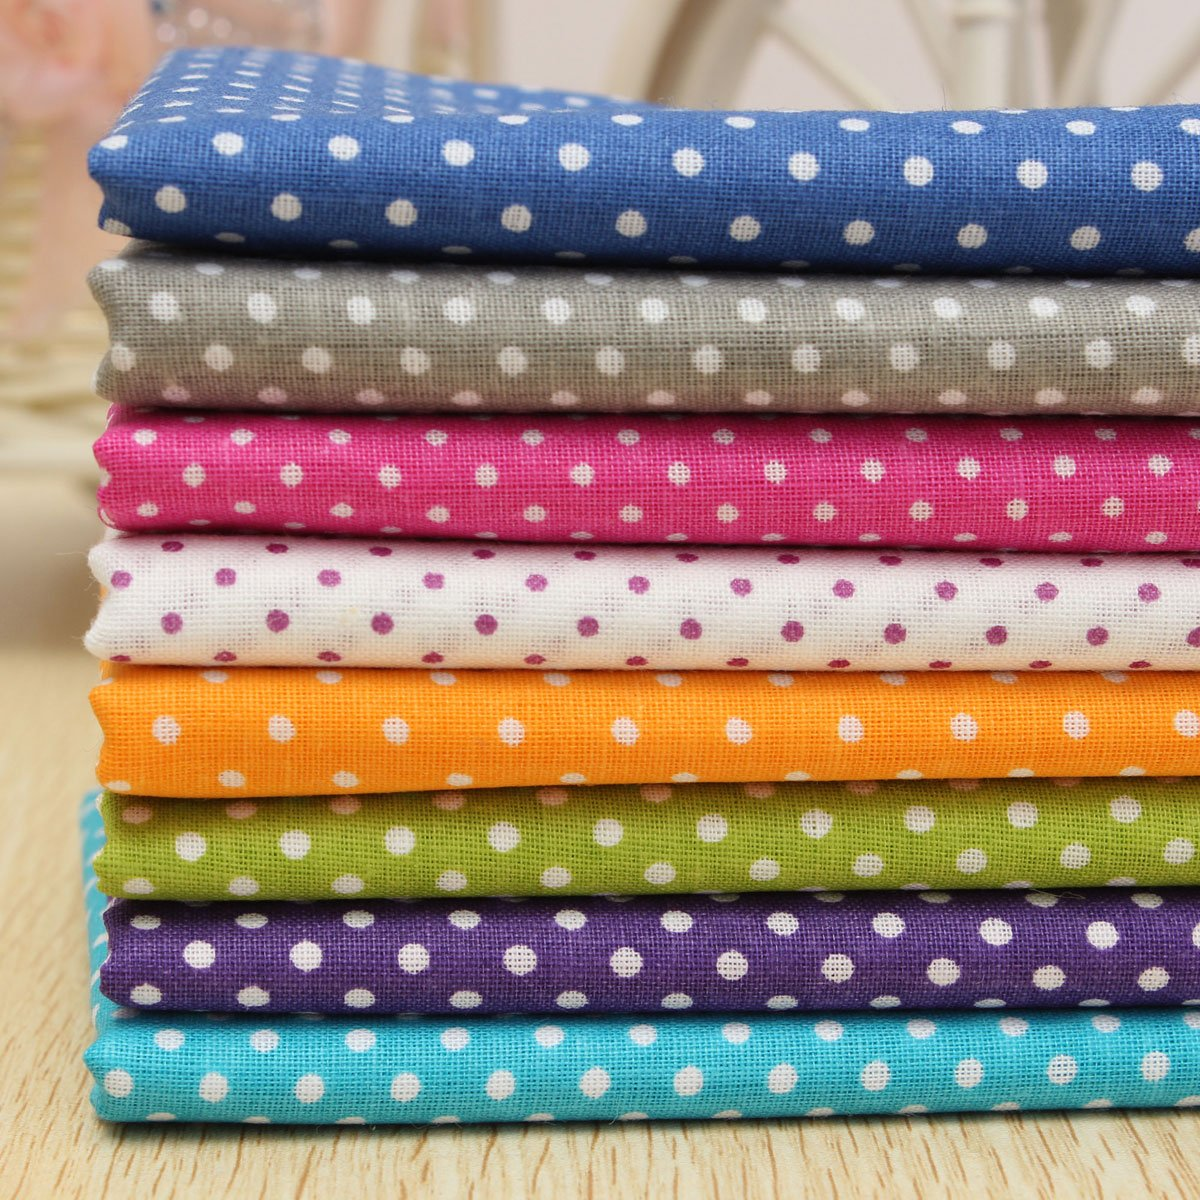 KINGSO 7PCS Cotton Fabric Bundles Quilting Sewing DIY Craft 19.7x19.7inch Polka Dot KINGSOkijop1018